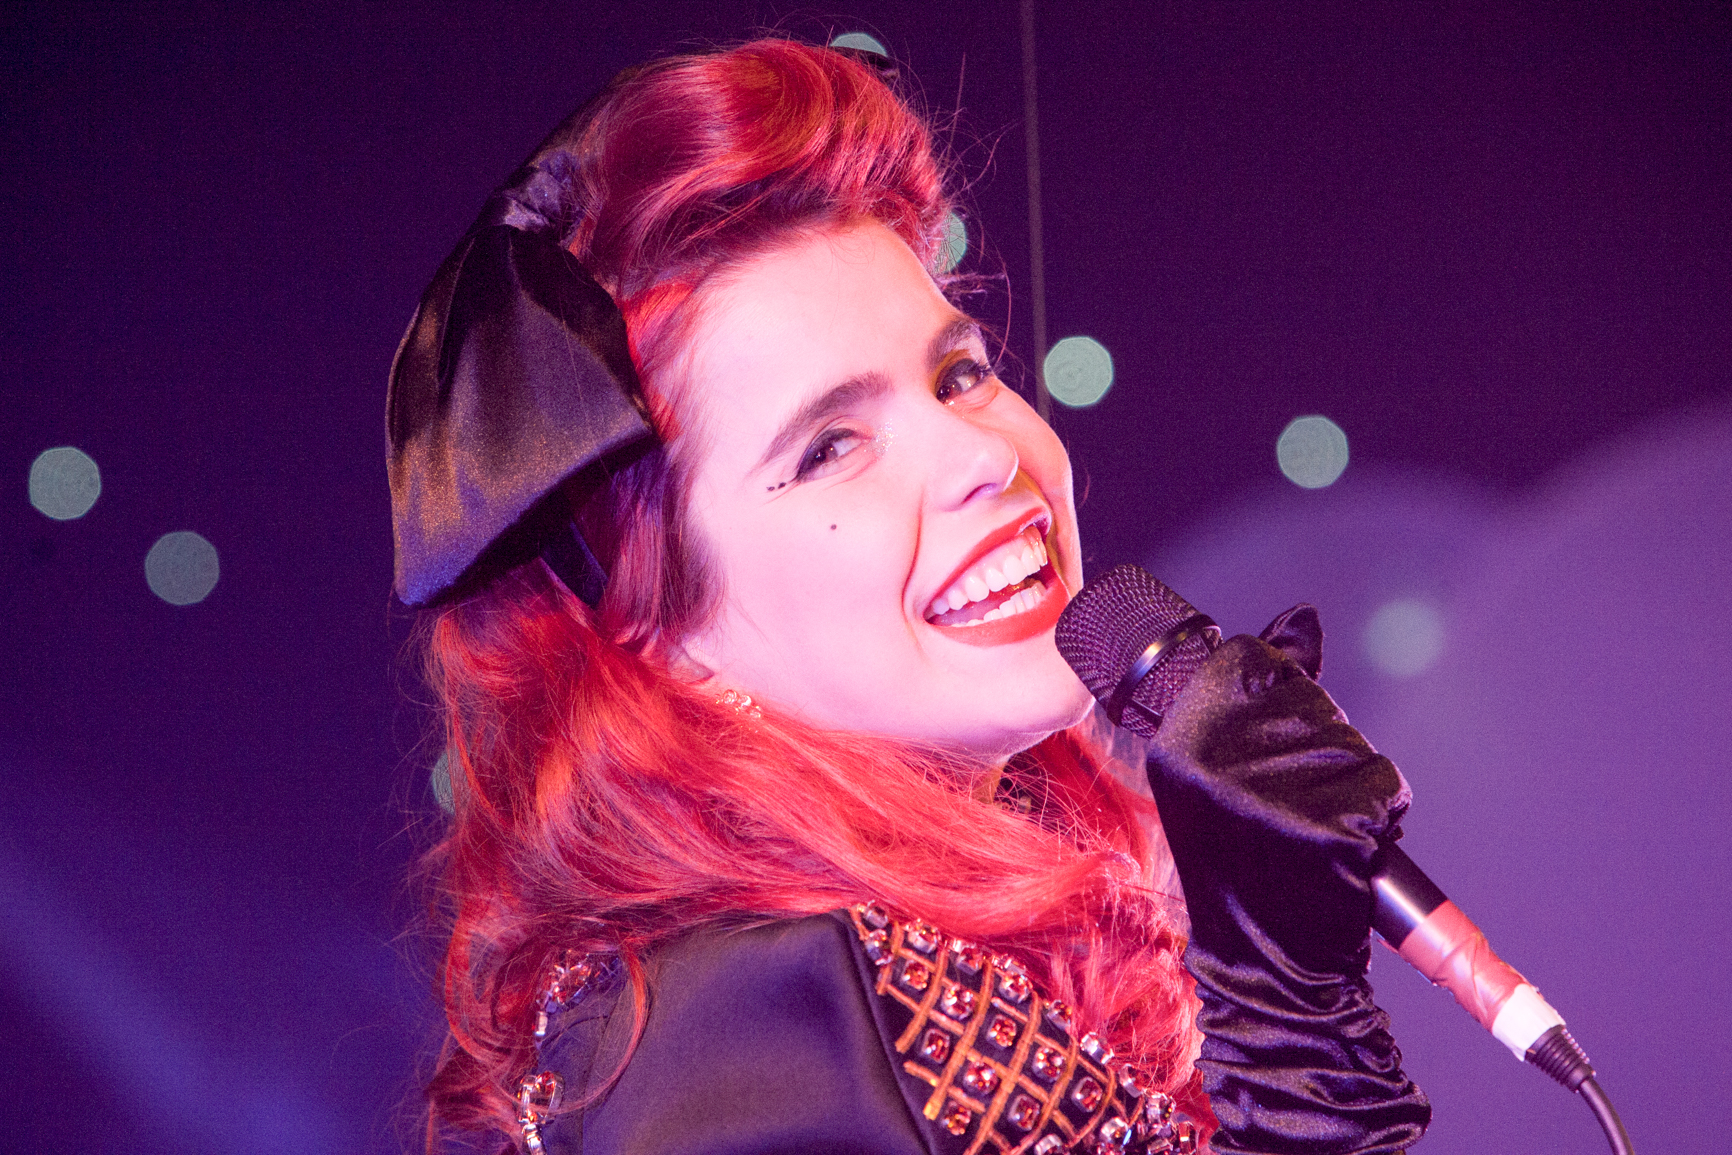 Paloma faith photographed in concert